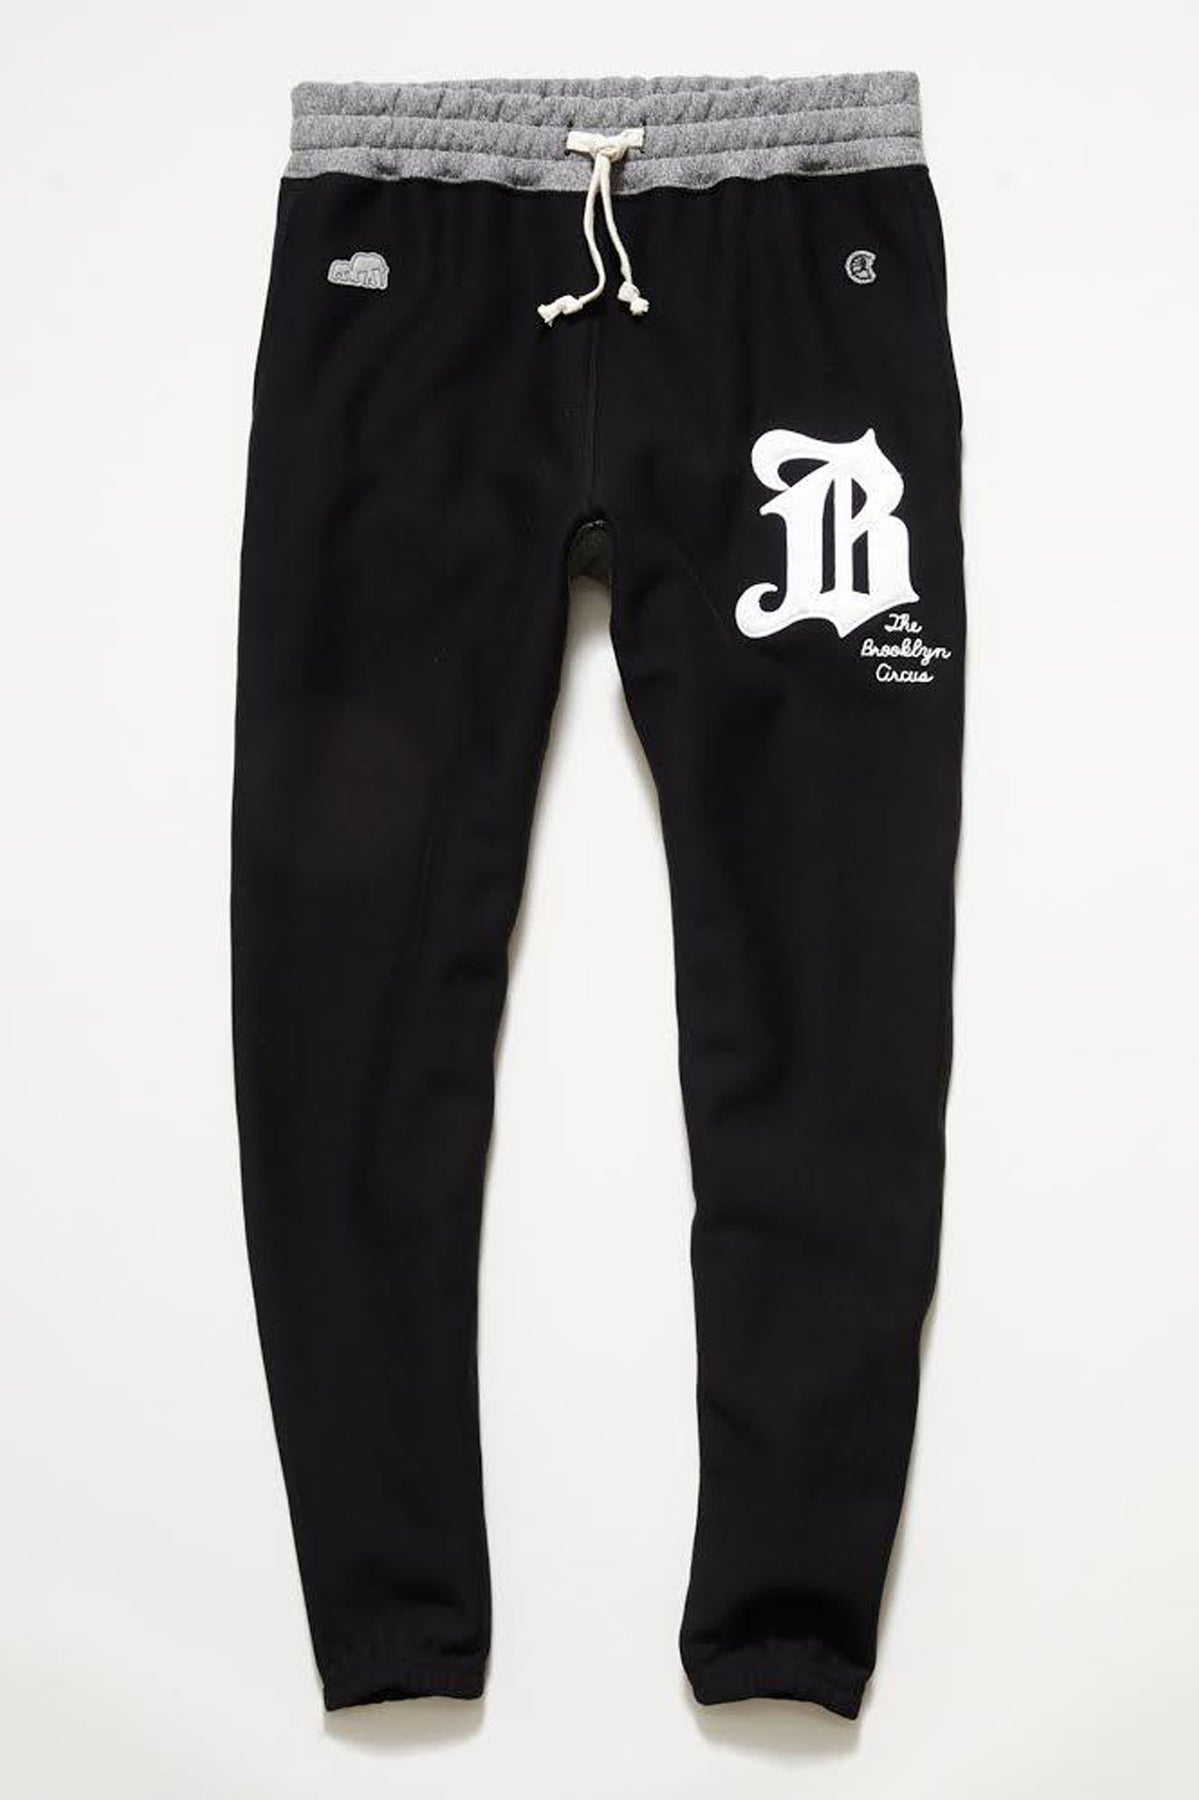 "TS x Champion Limited Edition: The Brooklyn Circus ""B"" Sweatpants in Black"